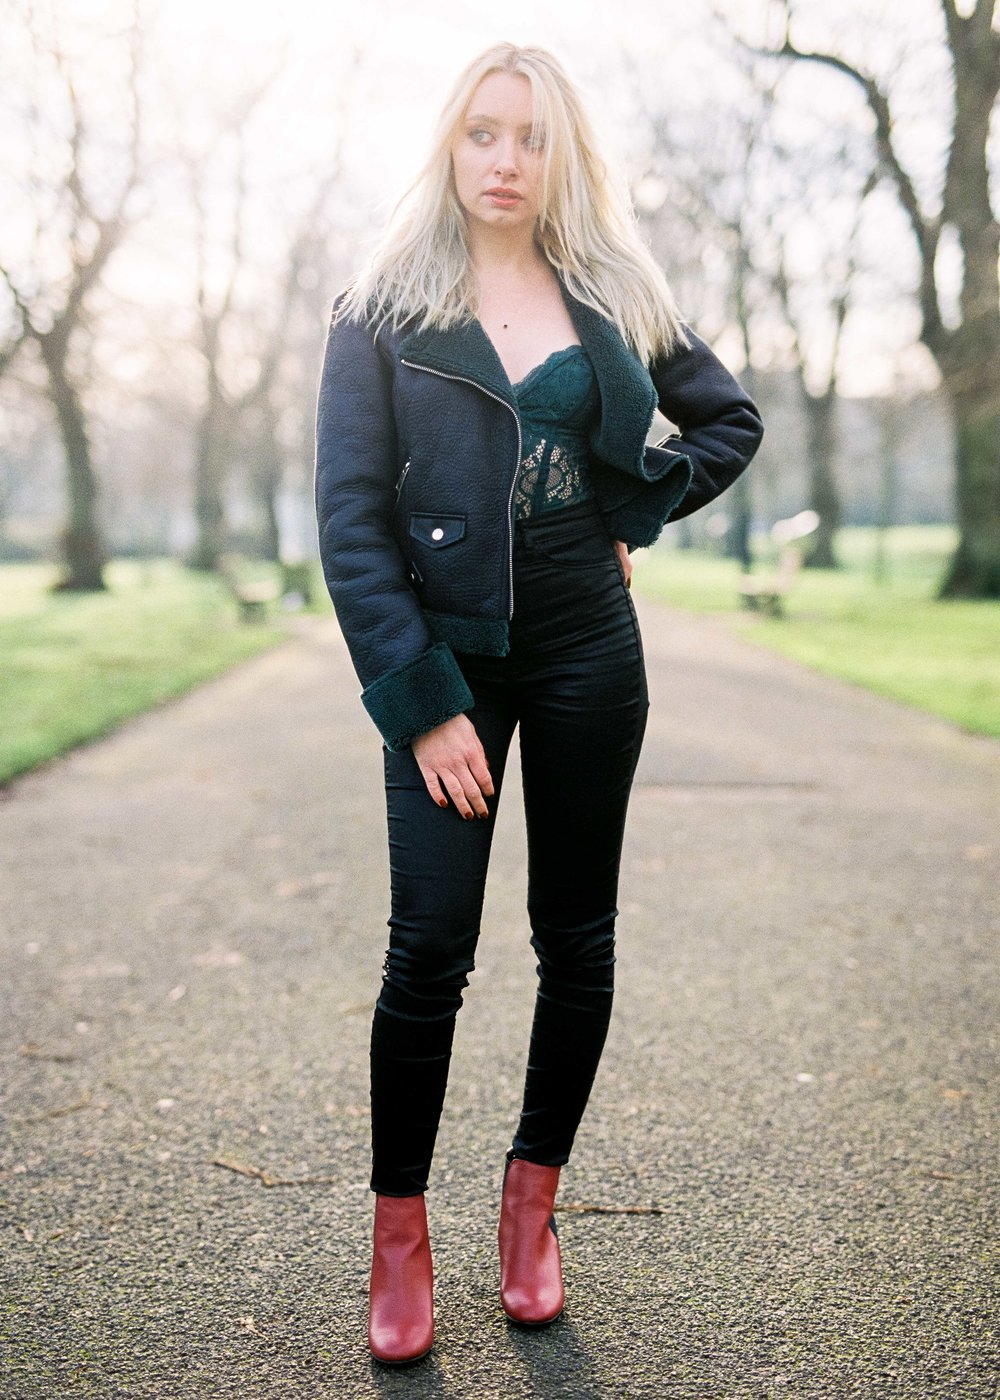 Leather Leggings in the Park